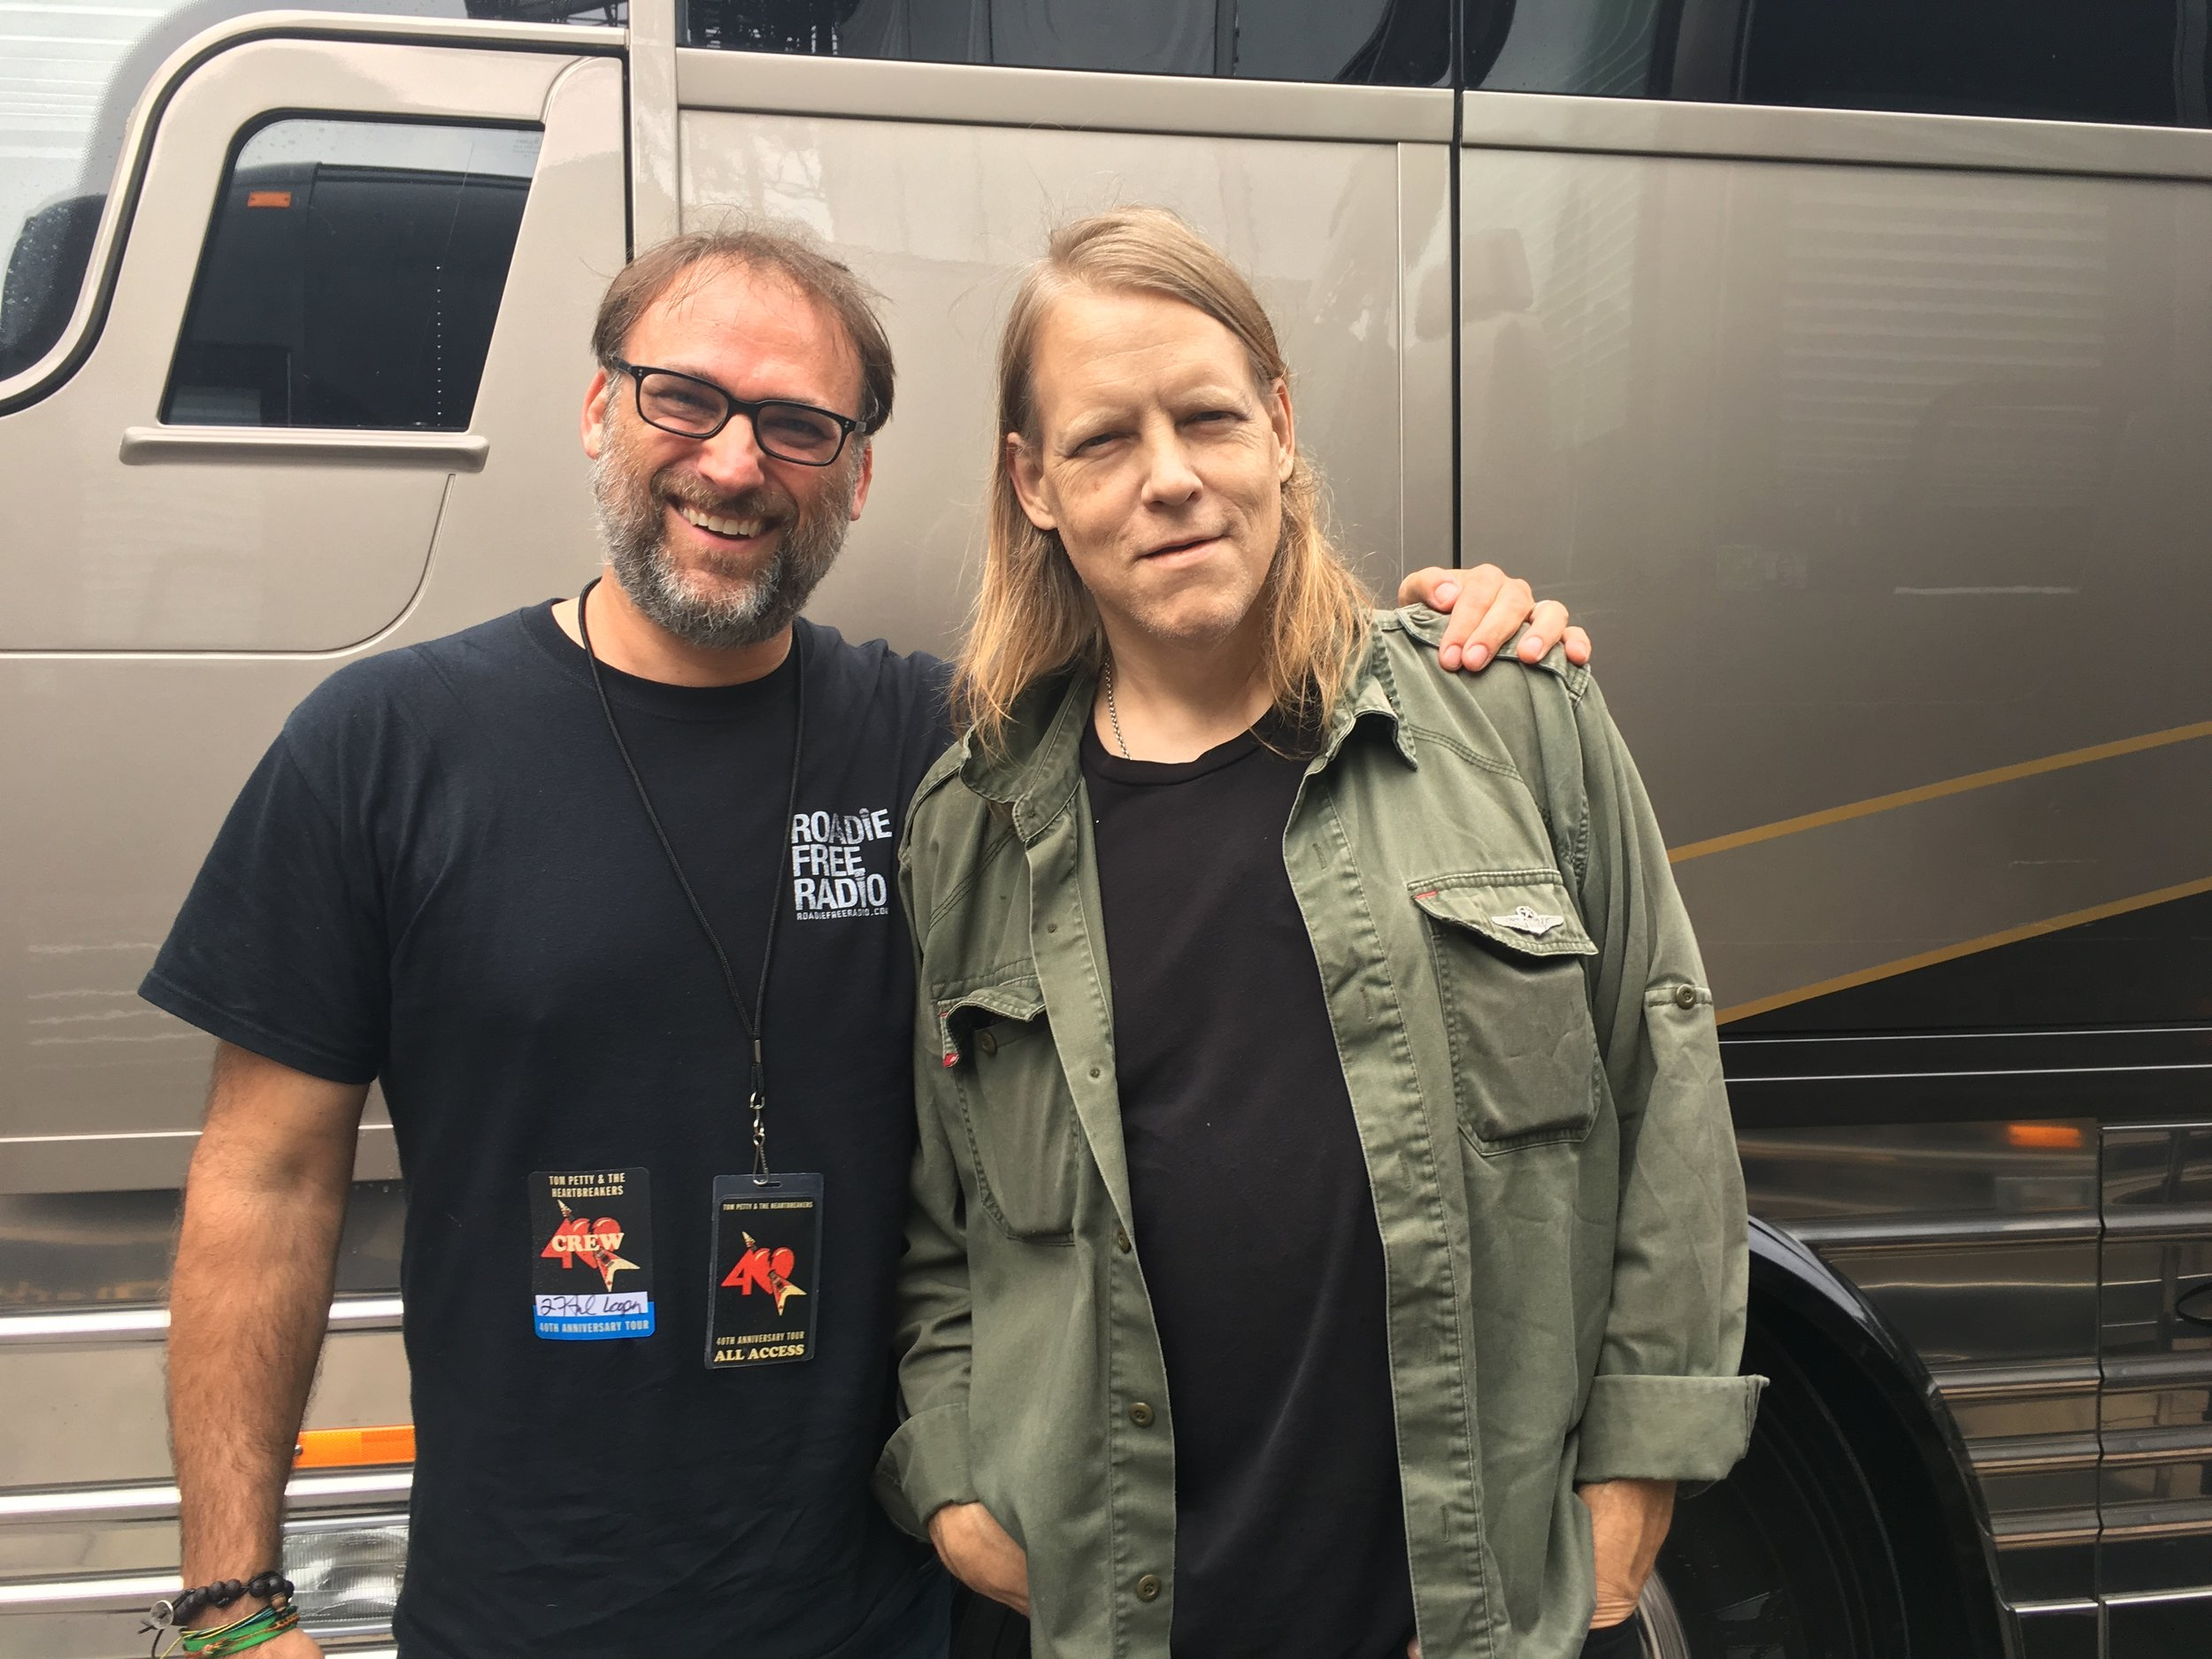 Greg and I outside of his bus.